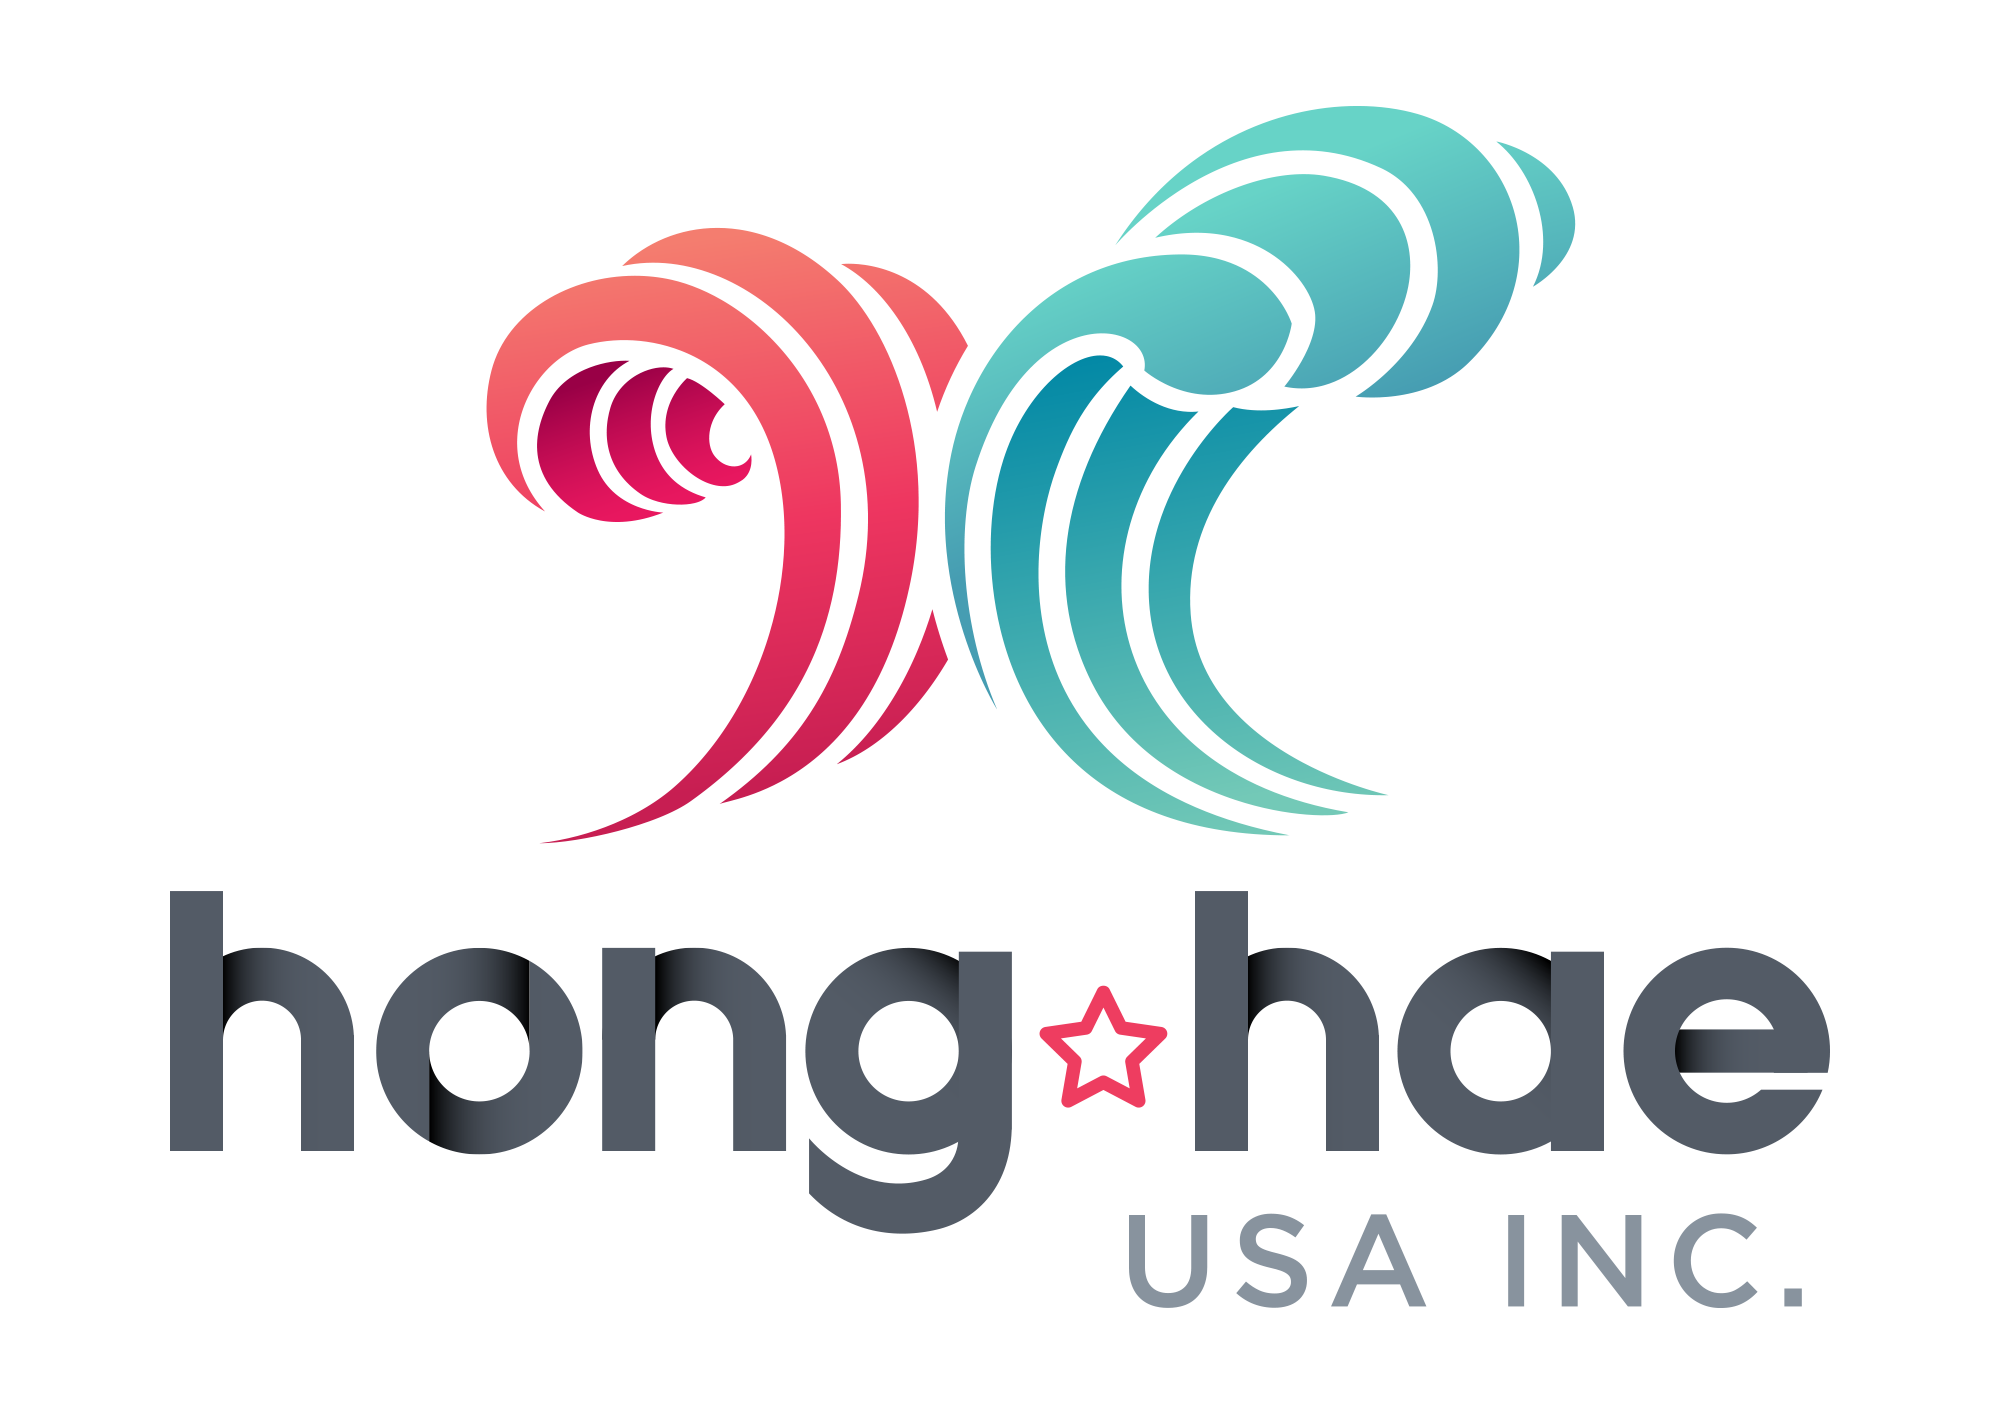 Color change to star located in the Hong Hae logo